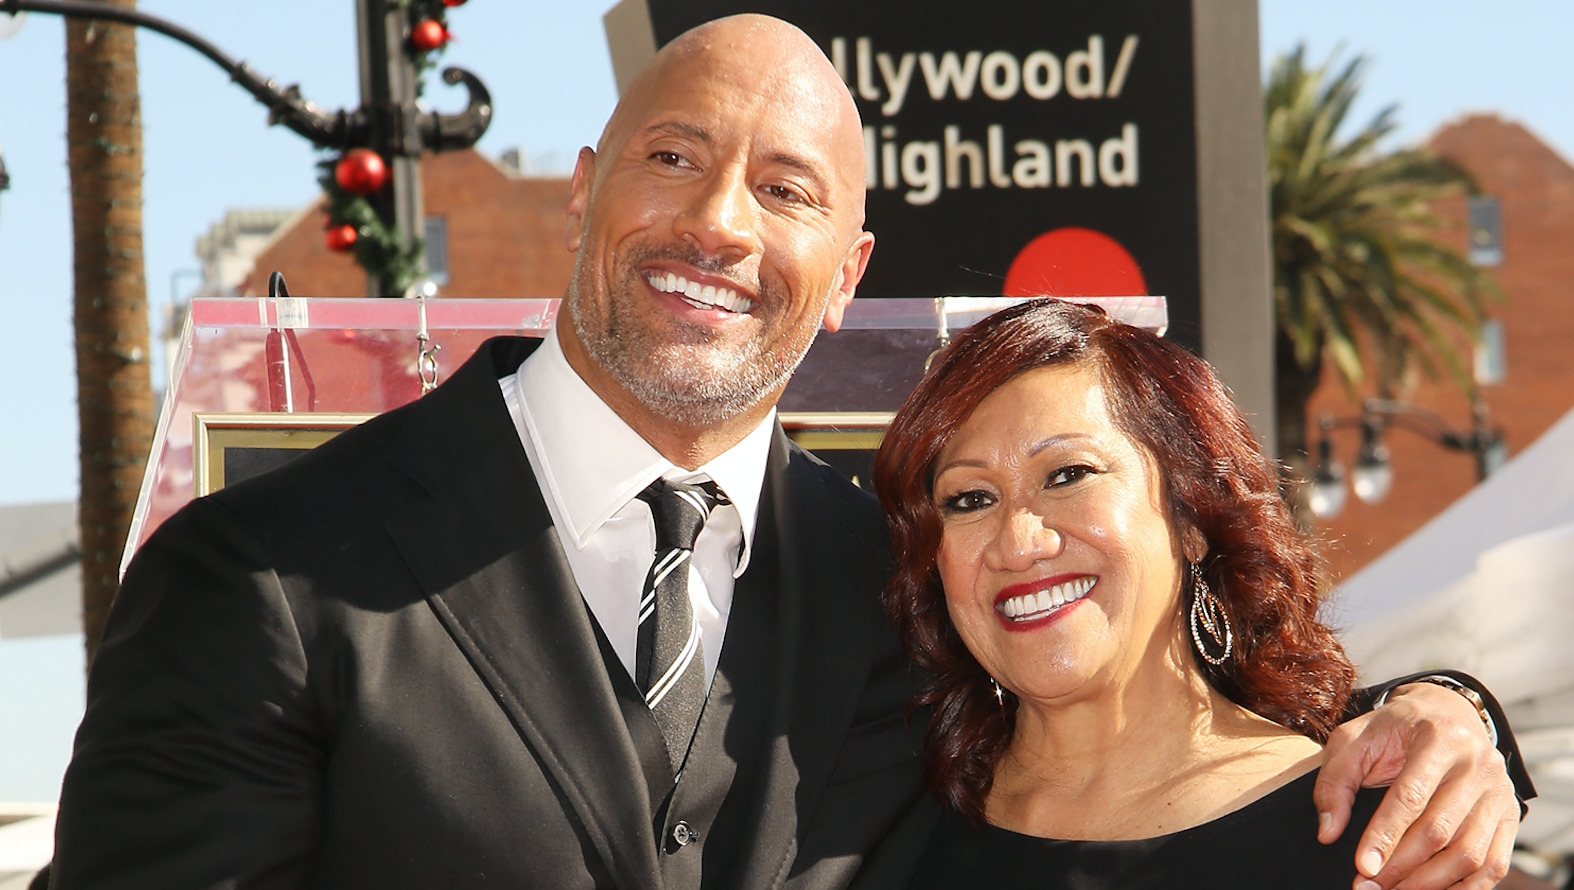 Season Of Giving! The Rock Gifts His Mom A Home For The Holidays — See The Sweet Video!